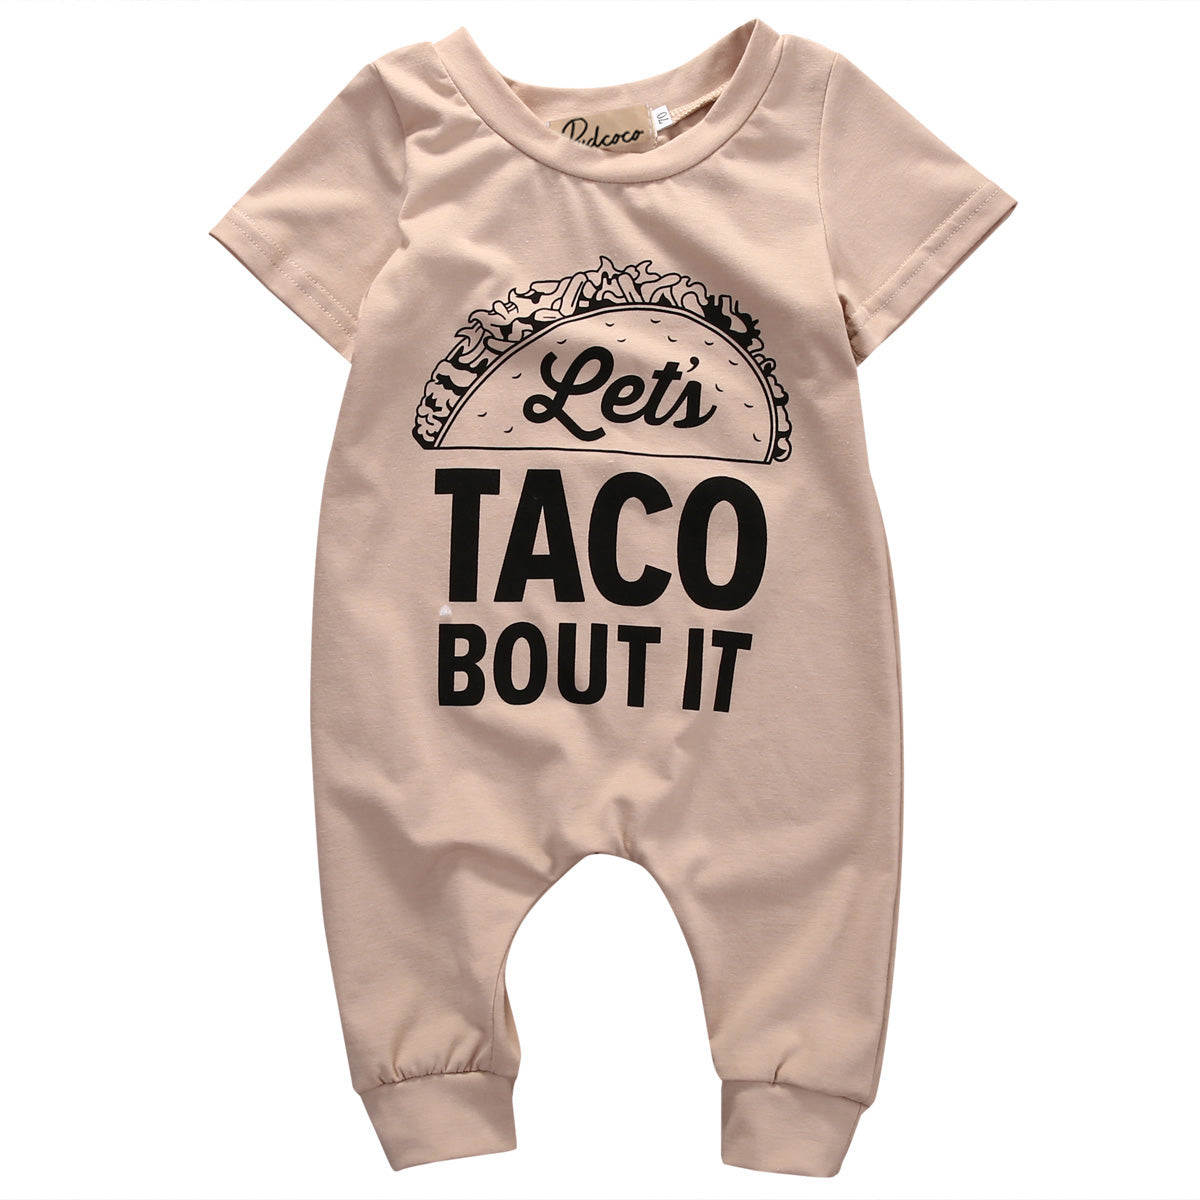 Let's Taco Bout It Jumpsuit - Your Baby's Closet